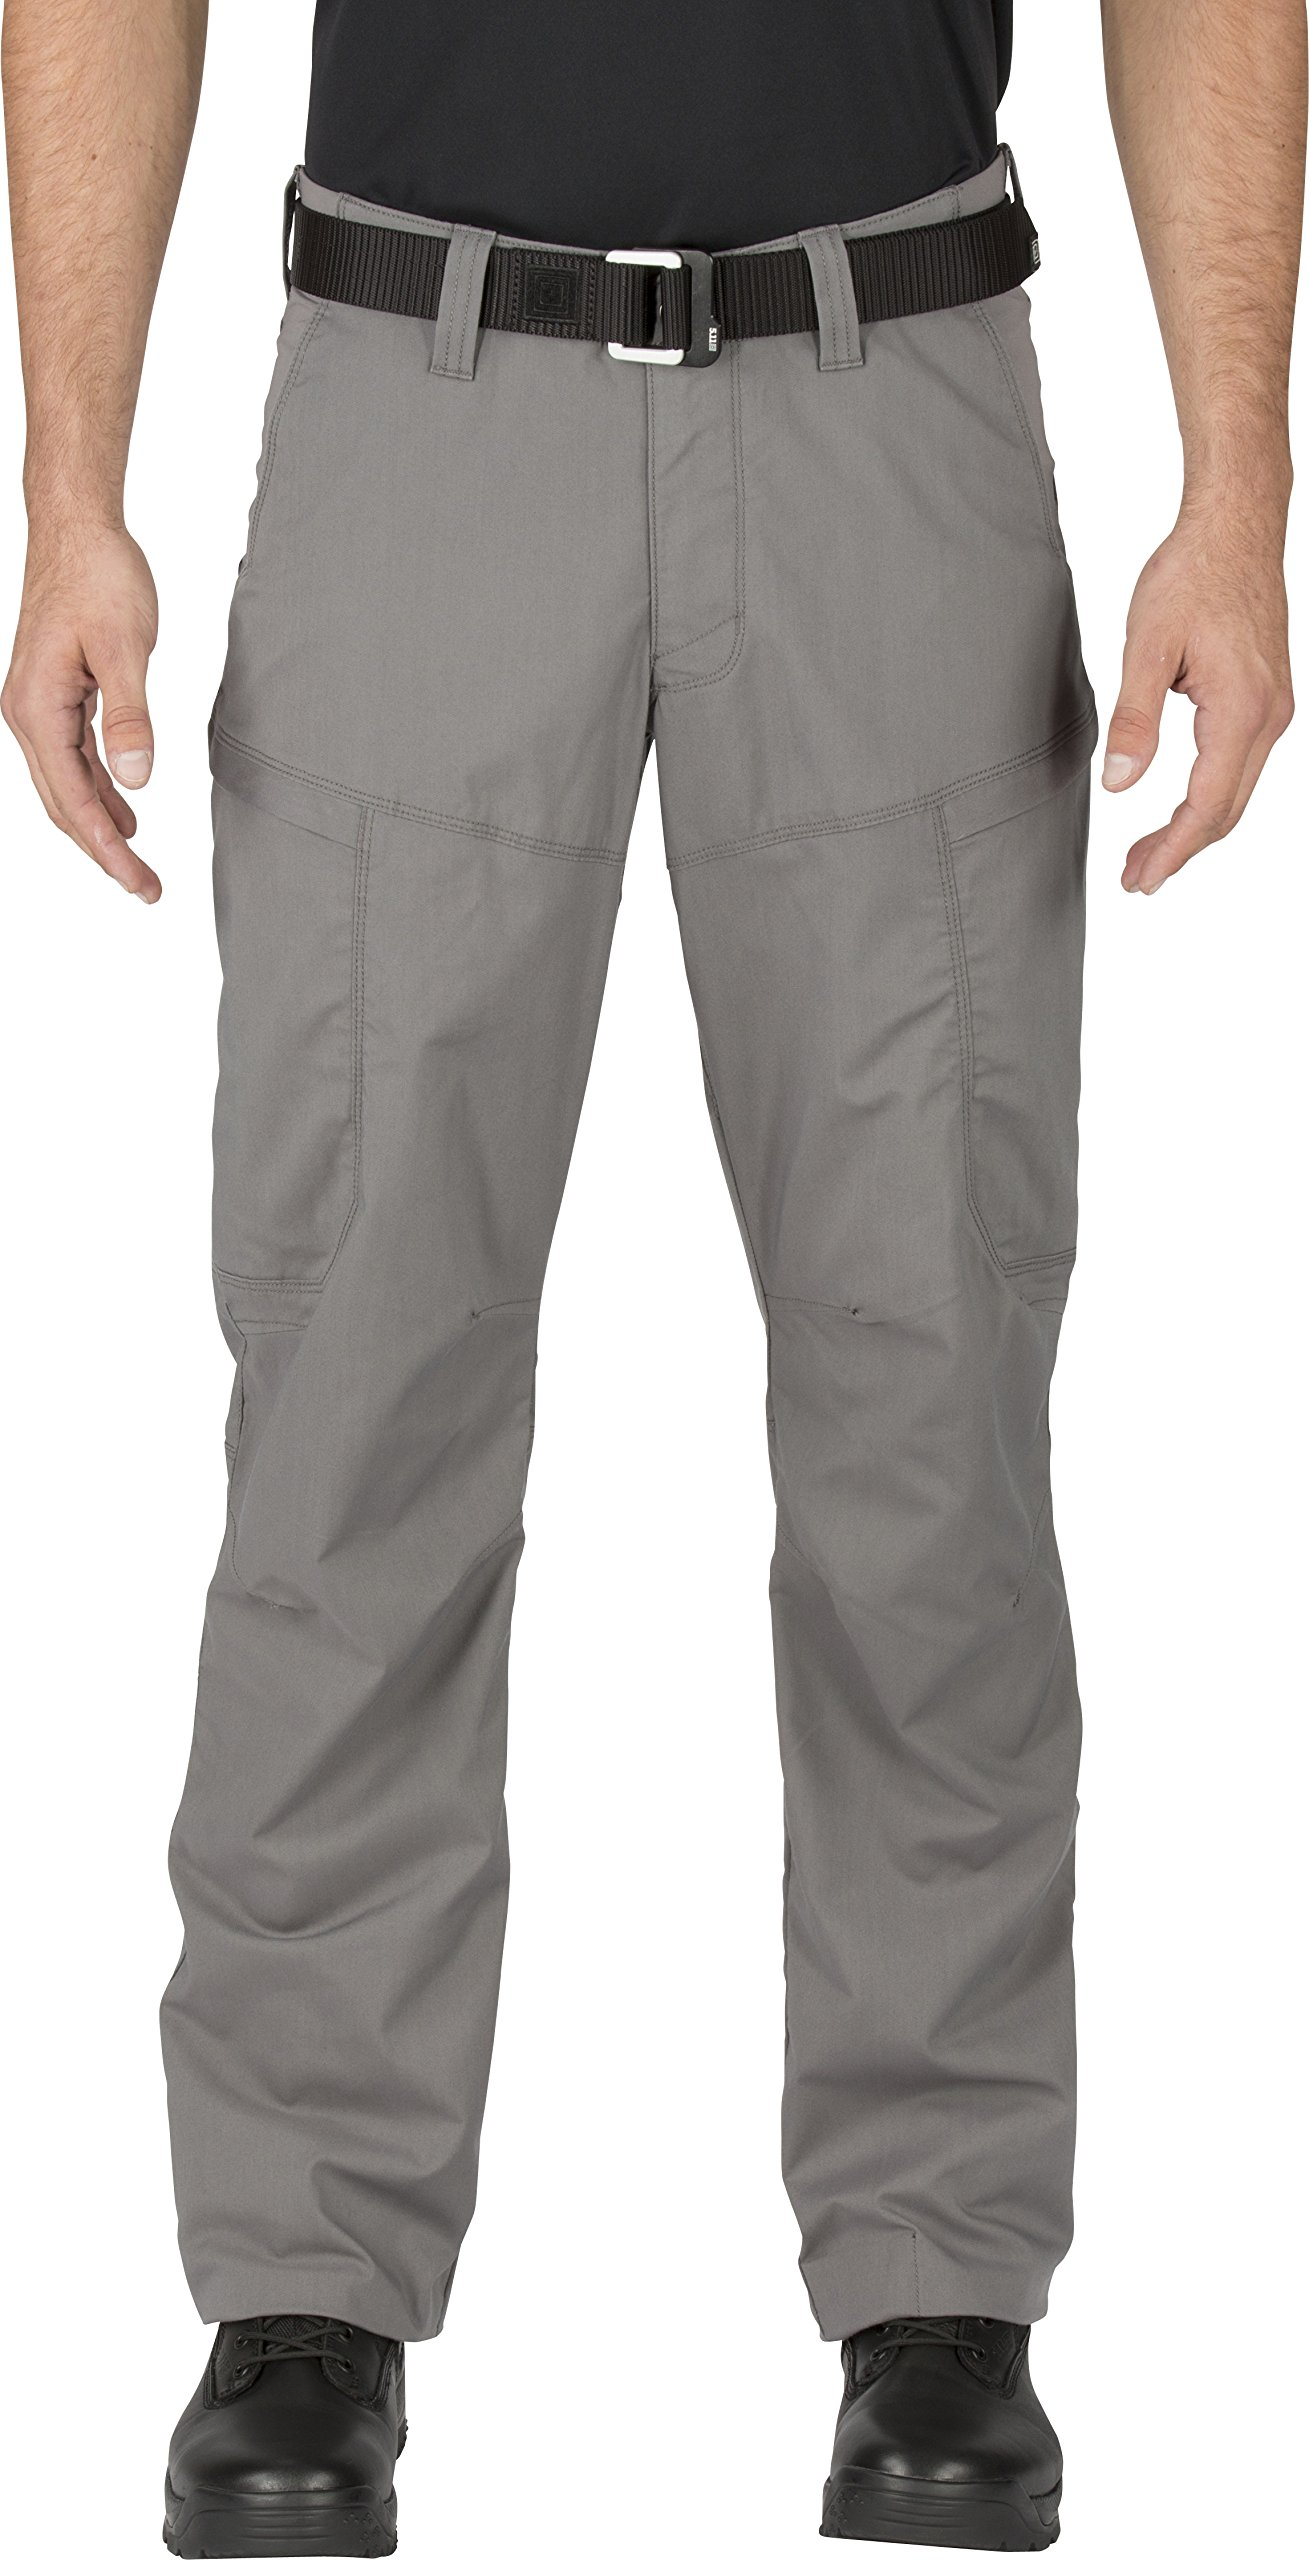 5.11 Men's APEX EDC Stealth Cargo Pocket Tactical Pant Style 74434, Storm, 42W x 32L by 5.11